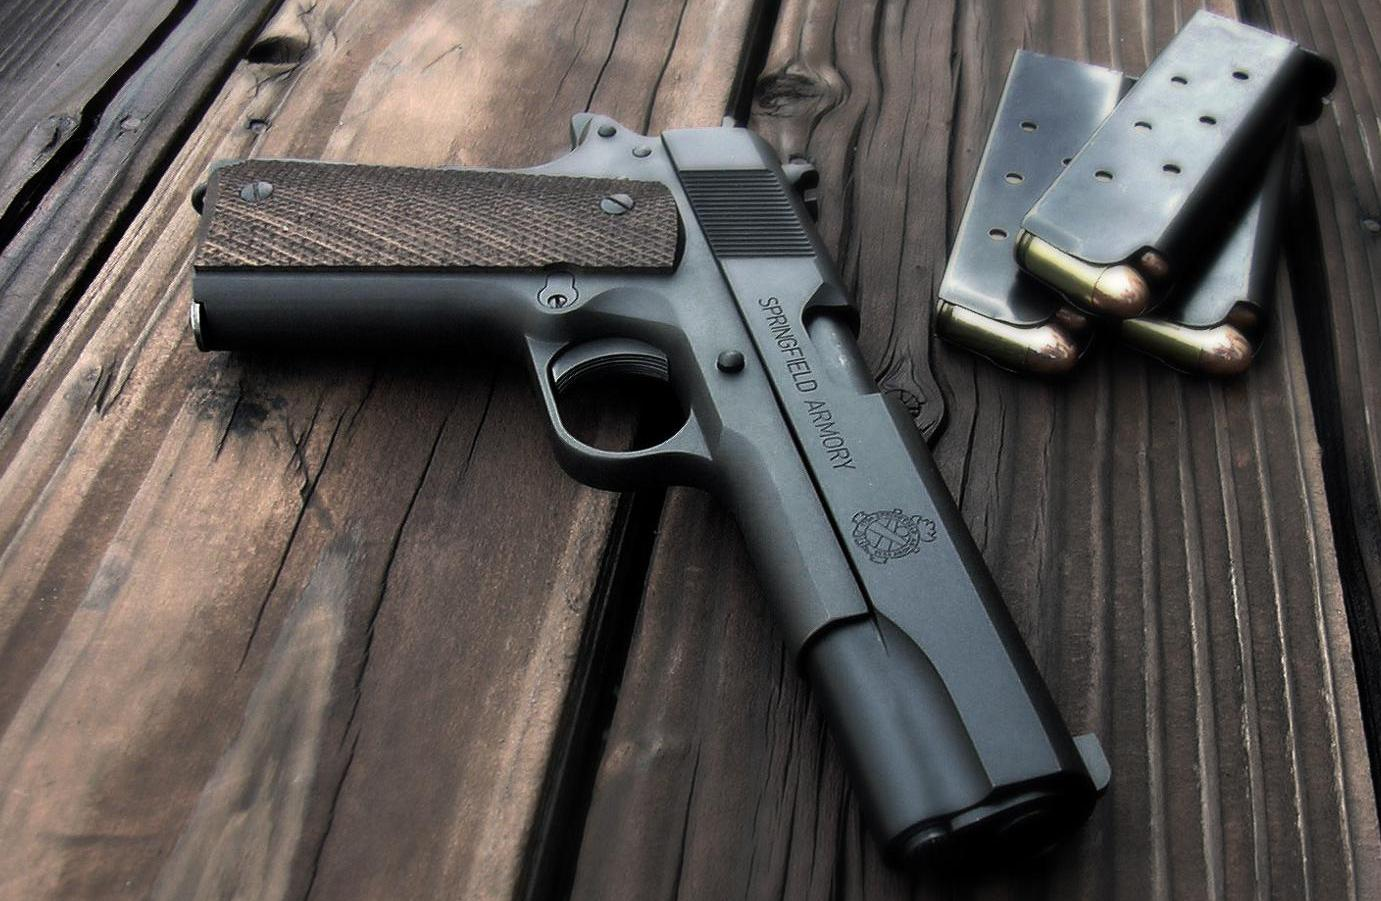 Weapons   Springfield Armory 1911 Pistol Wallpaper 1381x901